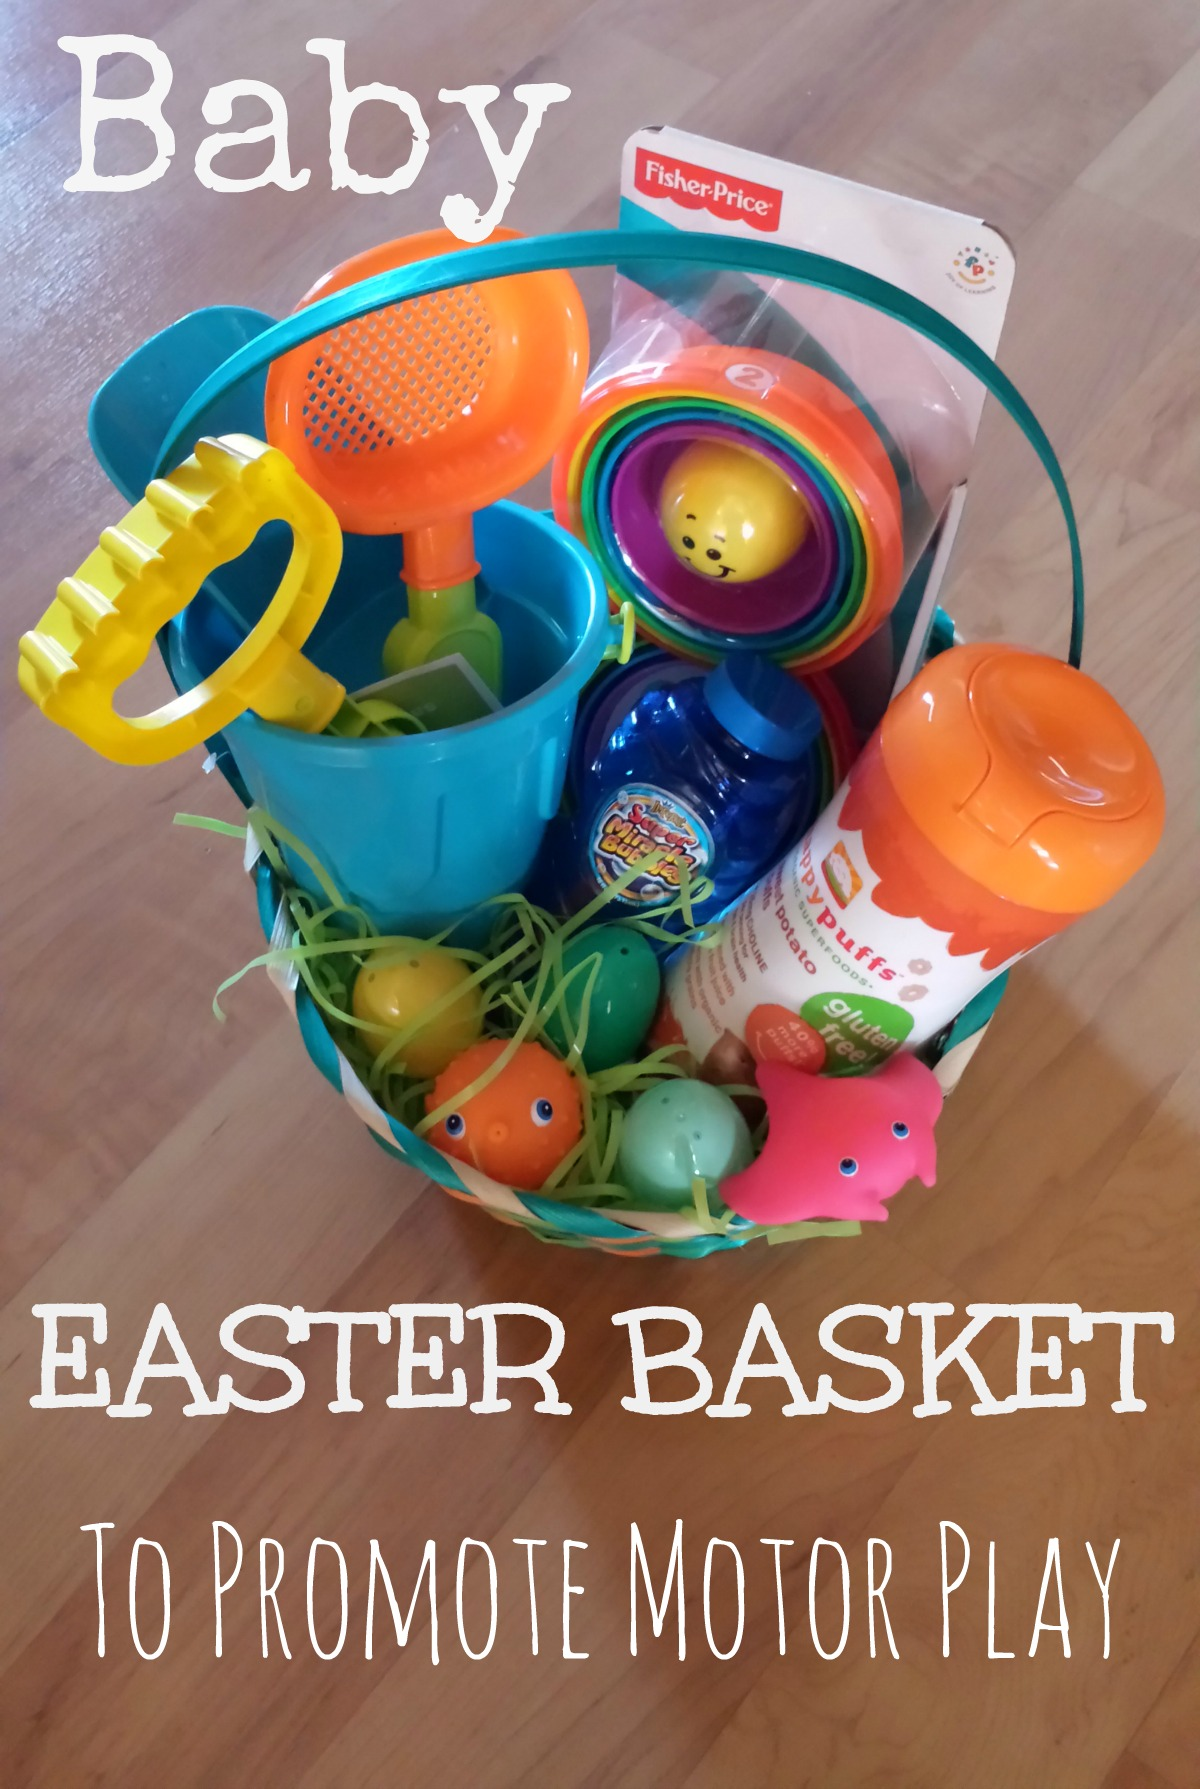 Easter basket for baby to promote motor development pink oatmeal easter basket to promote motor play negle